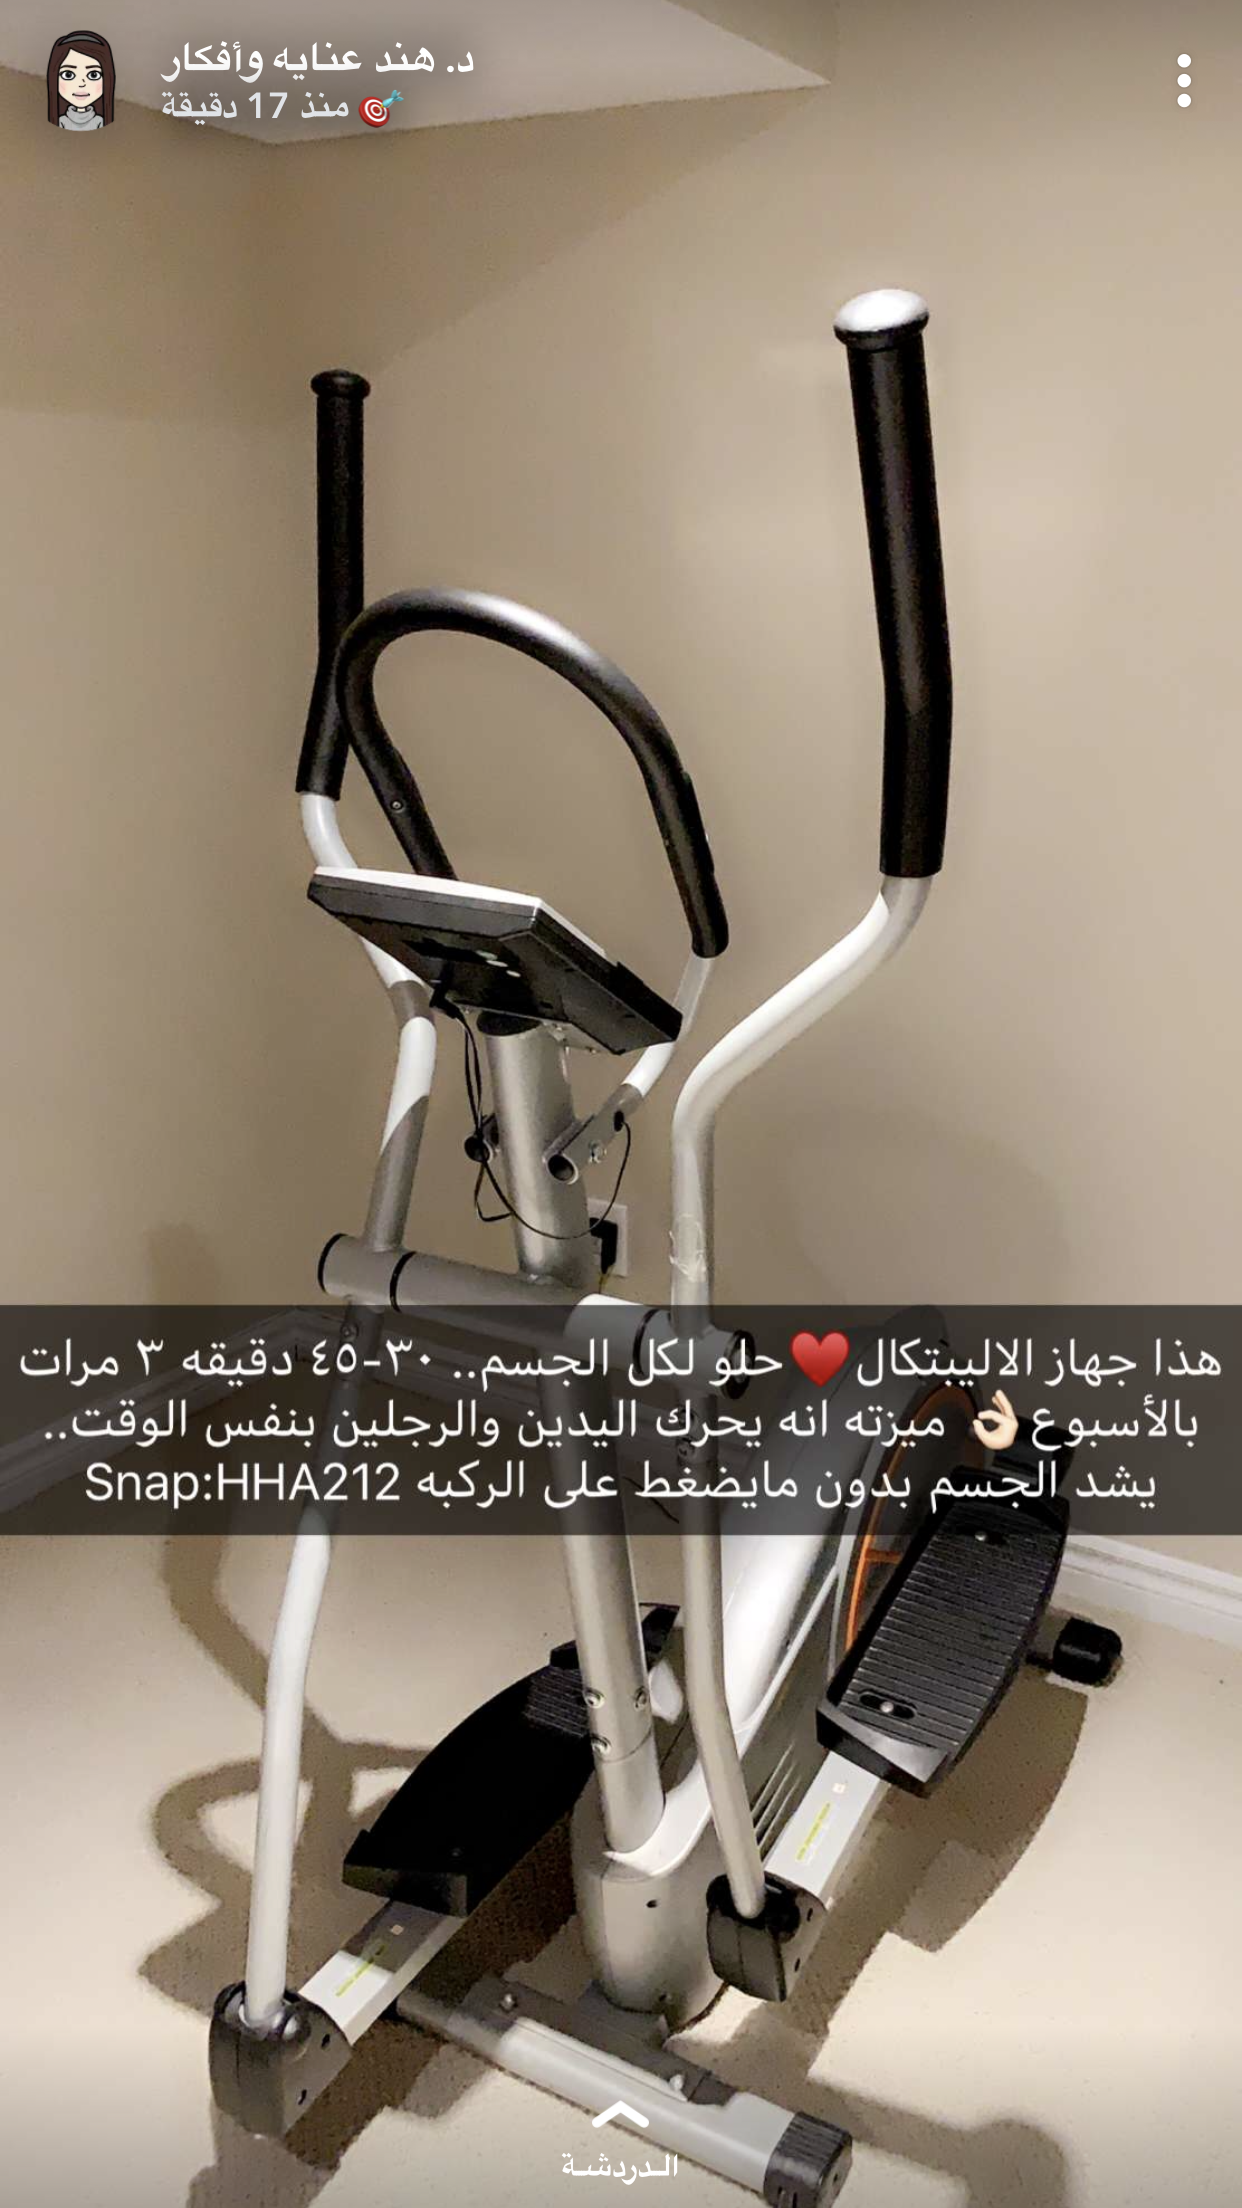 Pin By Romoz Hr On رياضة Sport Health And Fitness Articles Gym Workout Tips Health And Fitness Expo